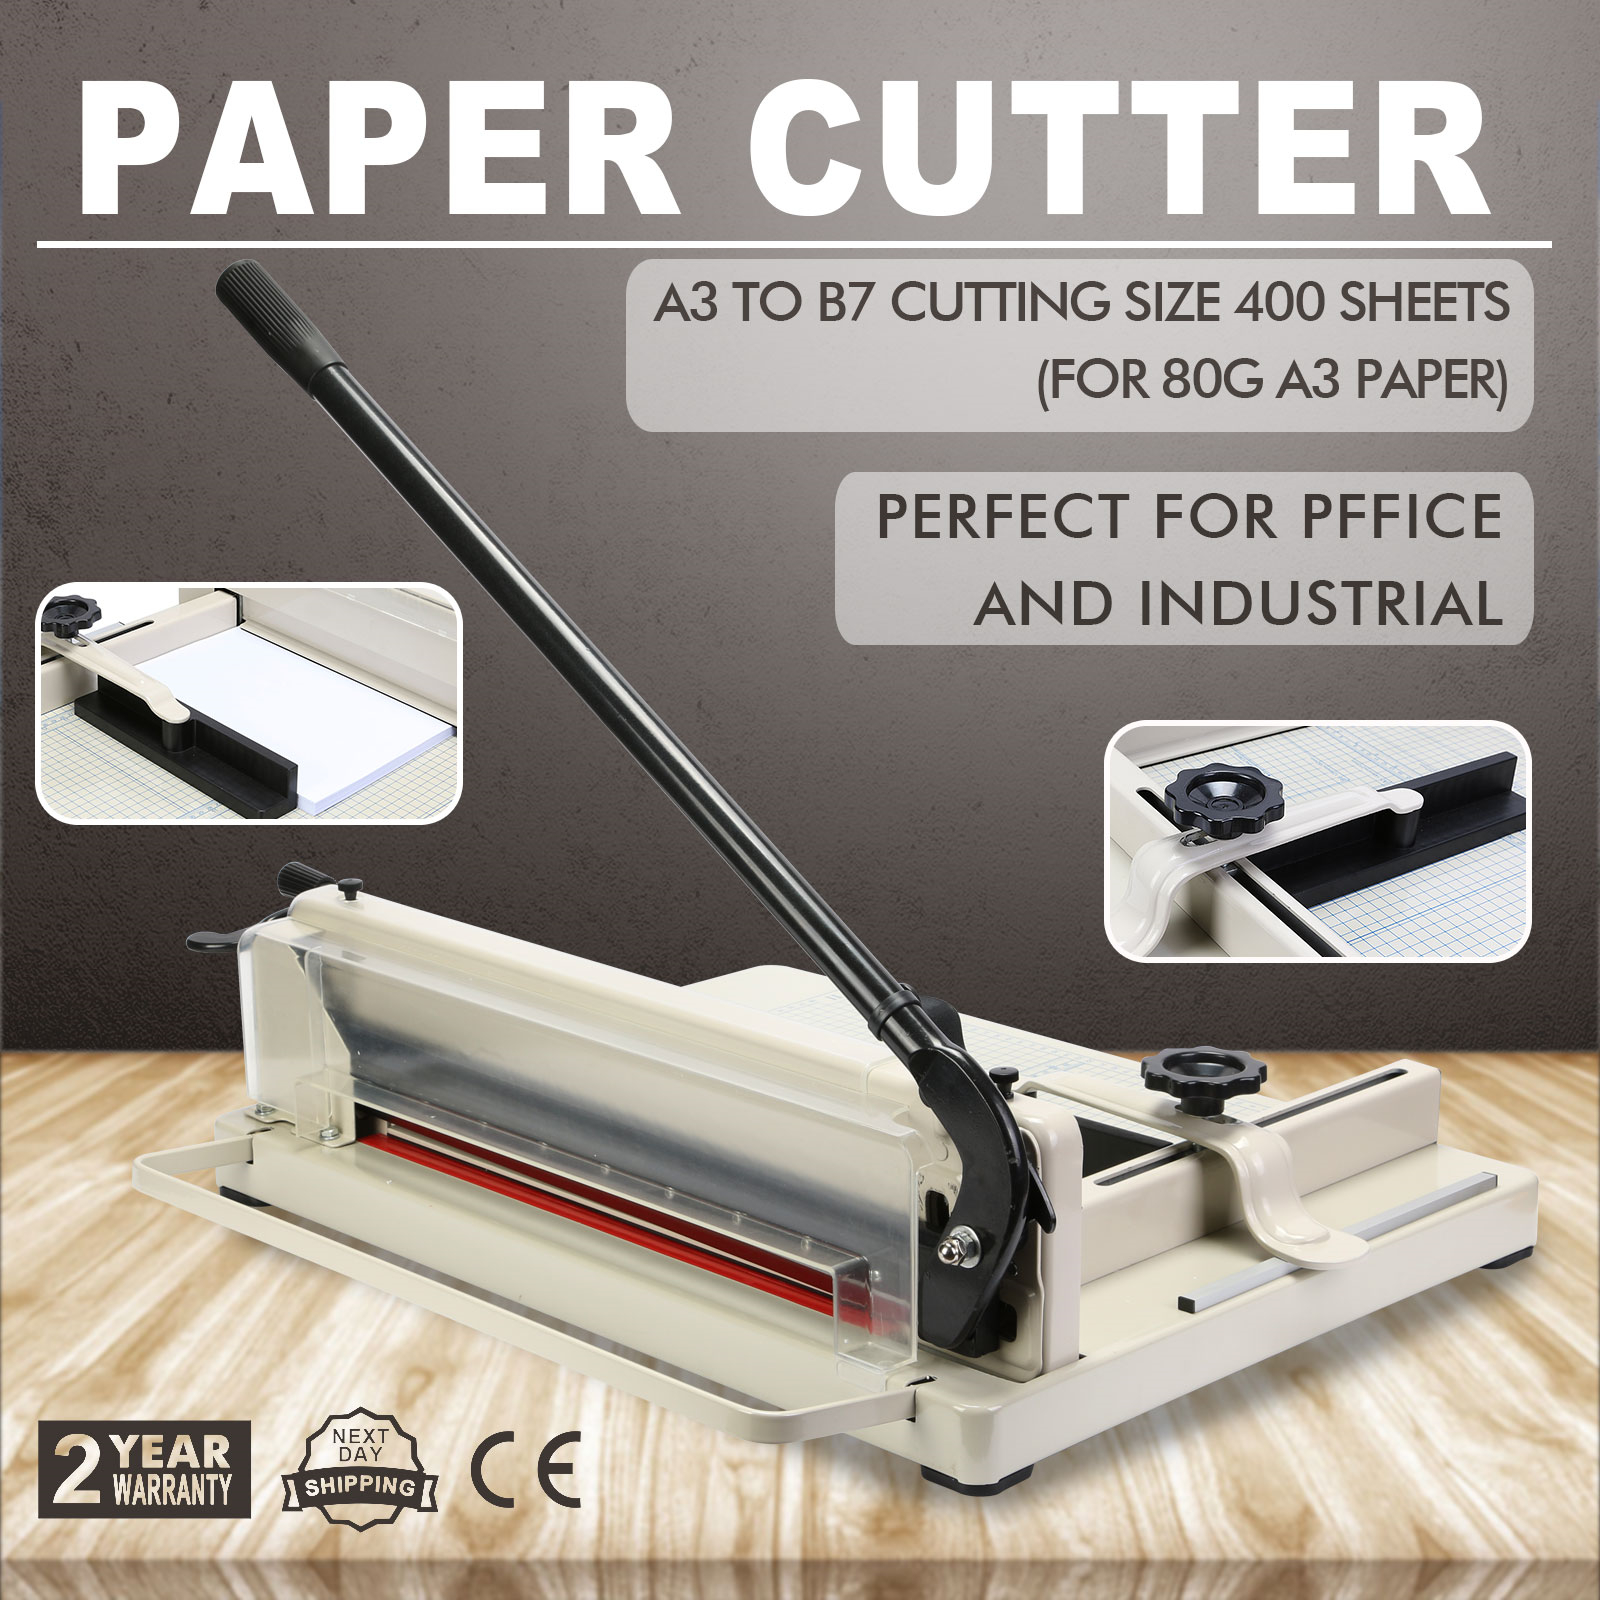 heavy duty paper cutter Paper cutter, grey, 265, good condition, heavy duty cutter, manual clamp: $1,800 (1) in stock: more info on item 100 paper cutter, 92cm, 2006.